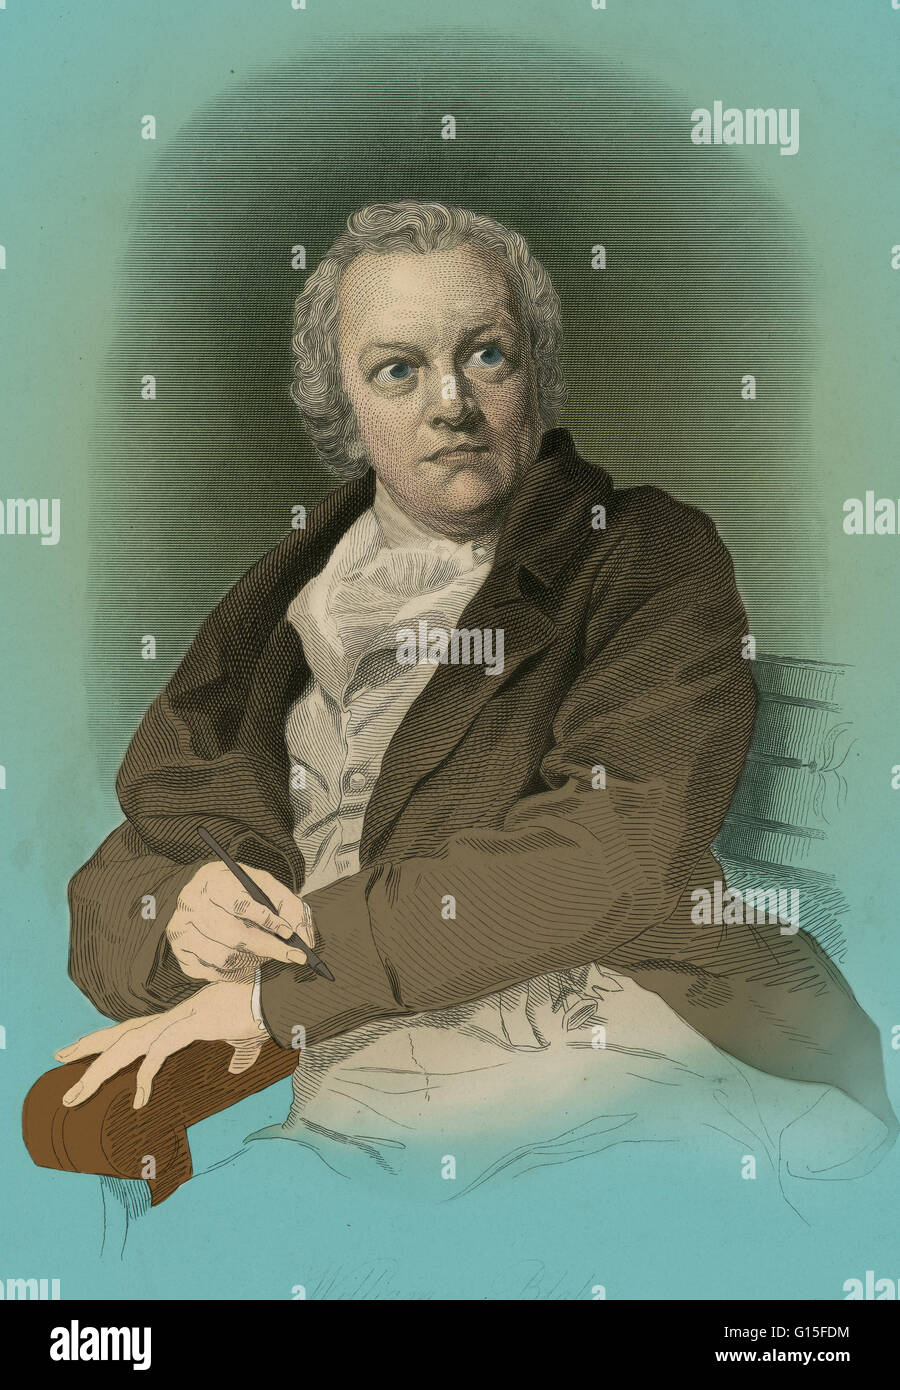 William Blake (1757-1827) was an English poet, painter, and printmaker. Blake is considered a seminal figure in - Stock Image